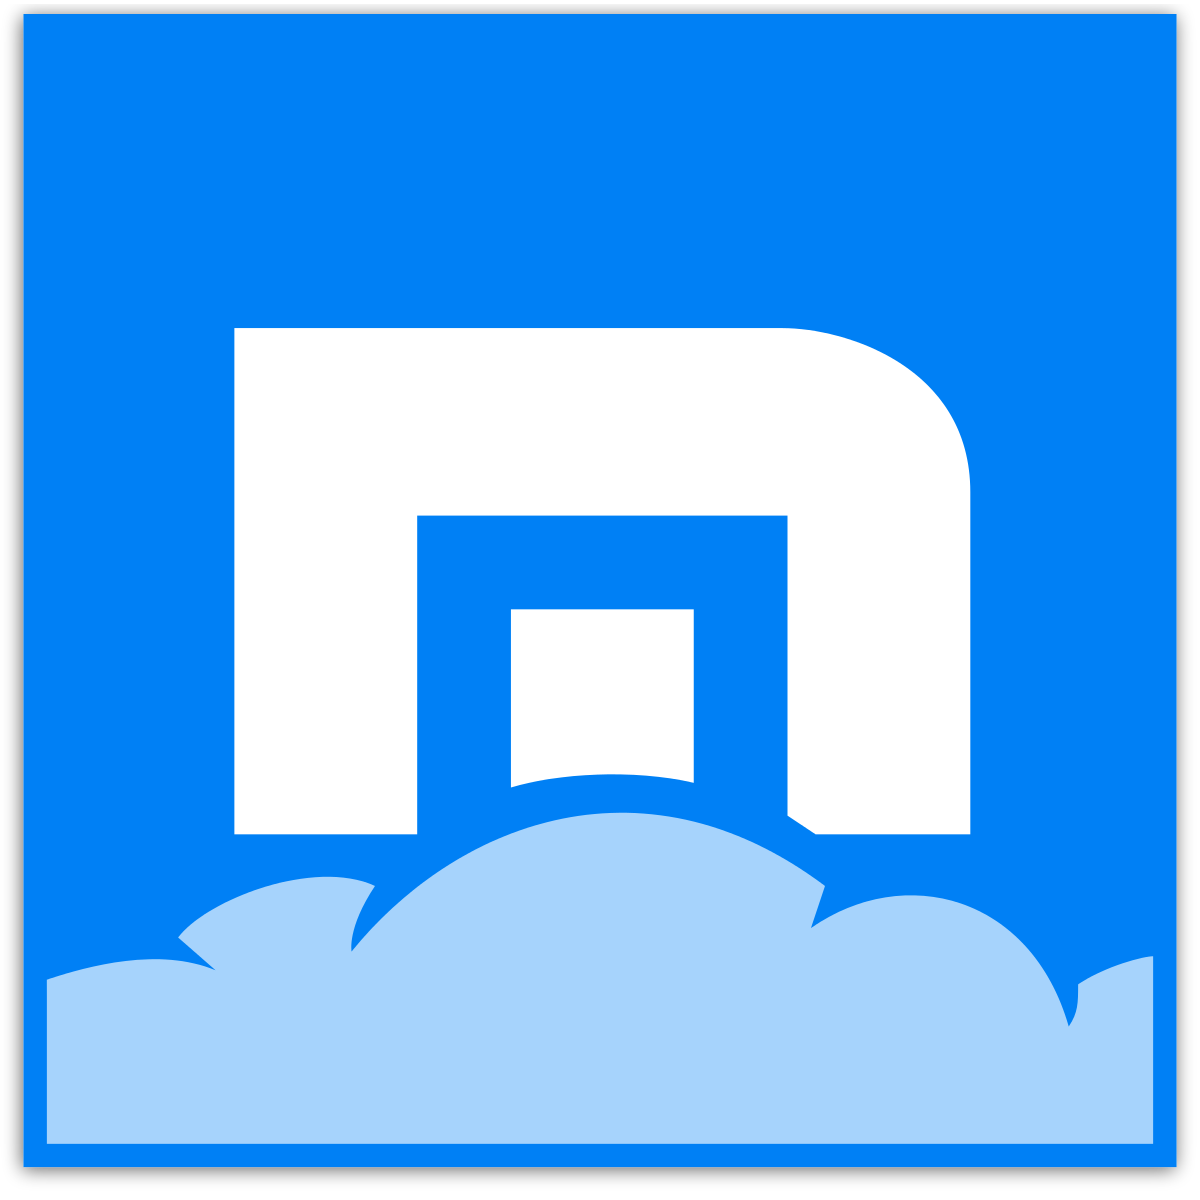 Researcher found a security vulnerability in Maxthon 5 Browser for Windows